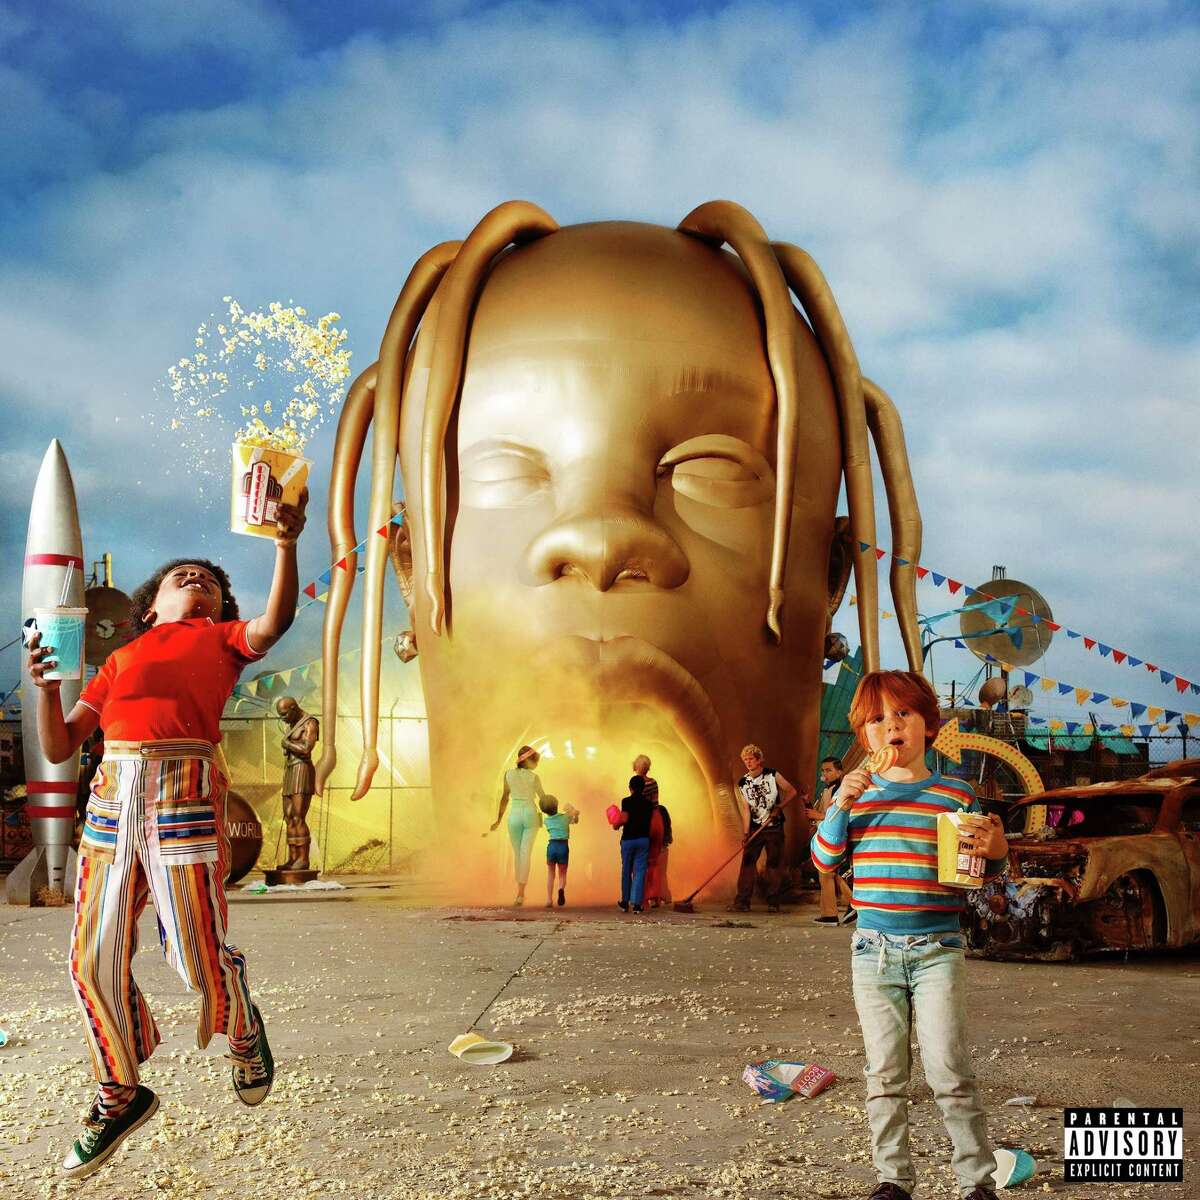 BACK AT IT: Travis Scott does more fan service via Twitter The Houston-born rapper, Travis Scott offered to design the senior shirts for a local high school after seeing a tweet from a student asking permission to use album art from